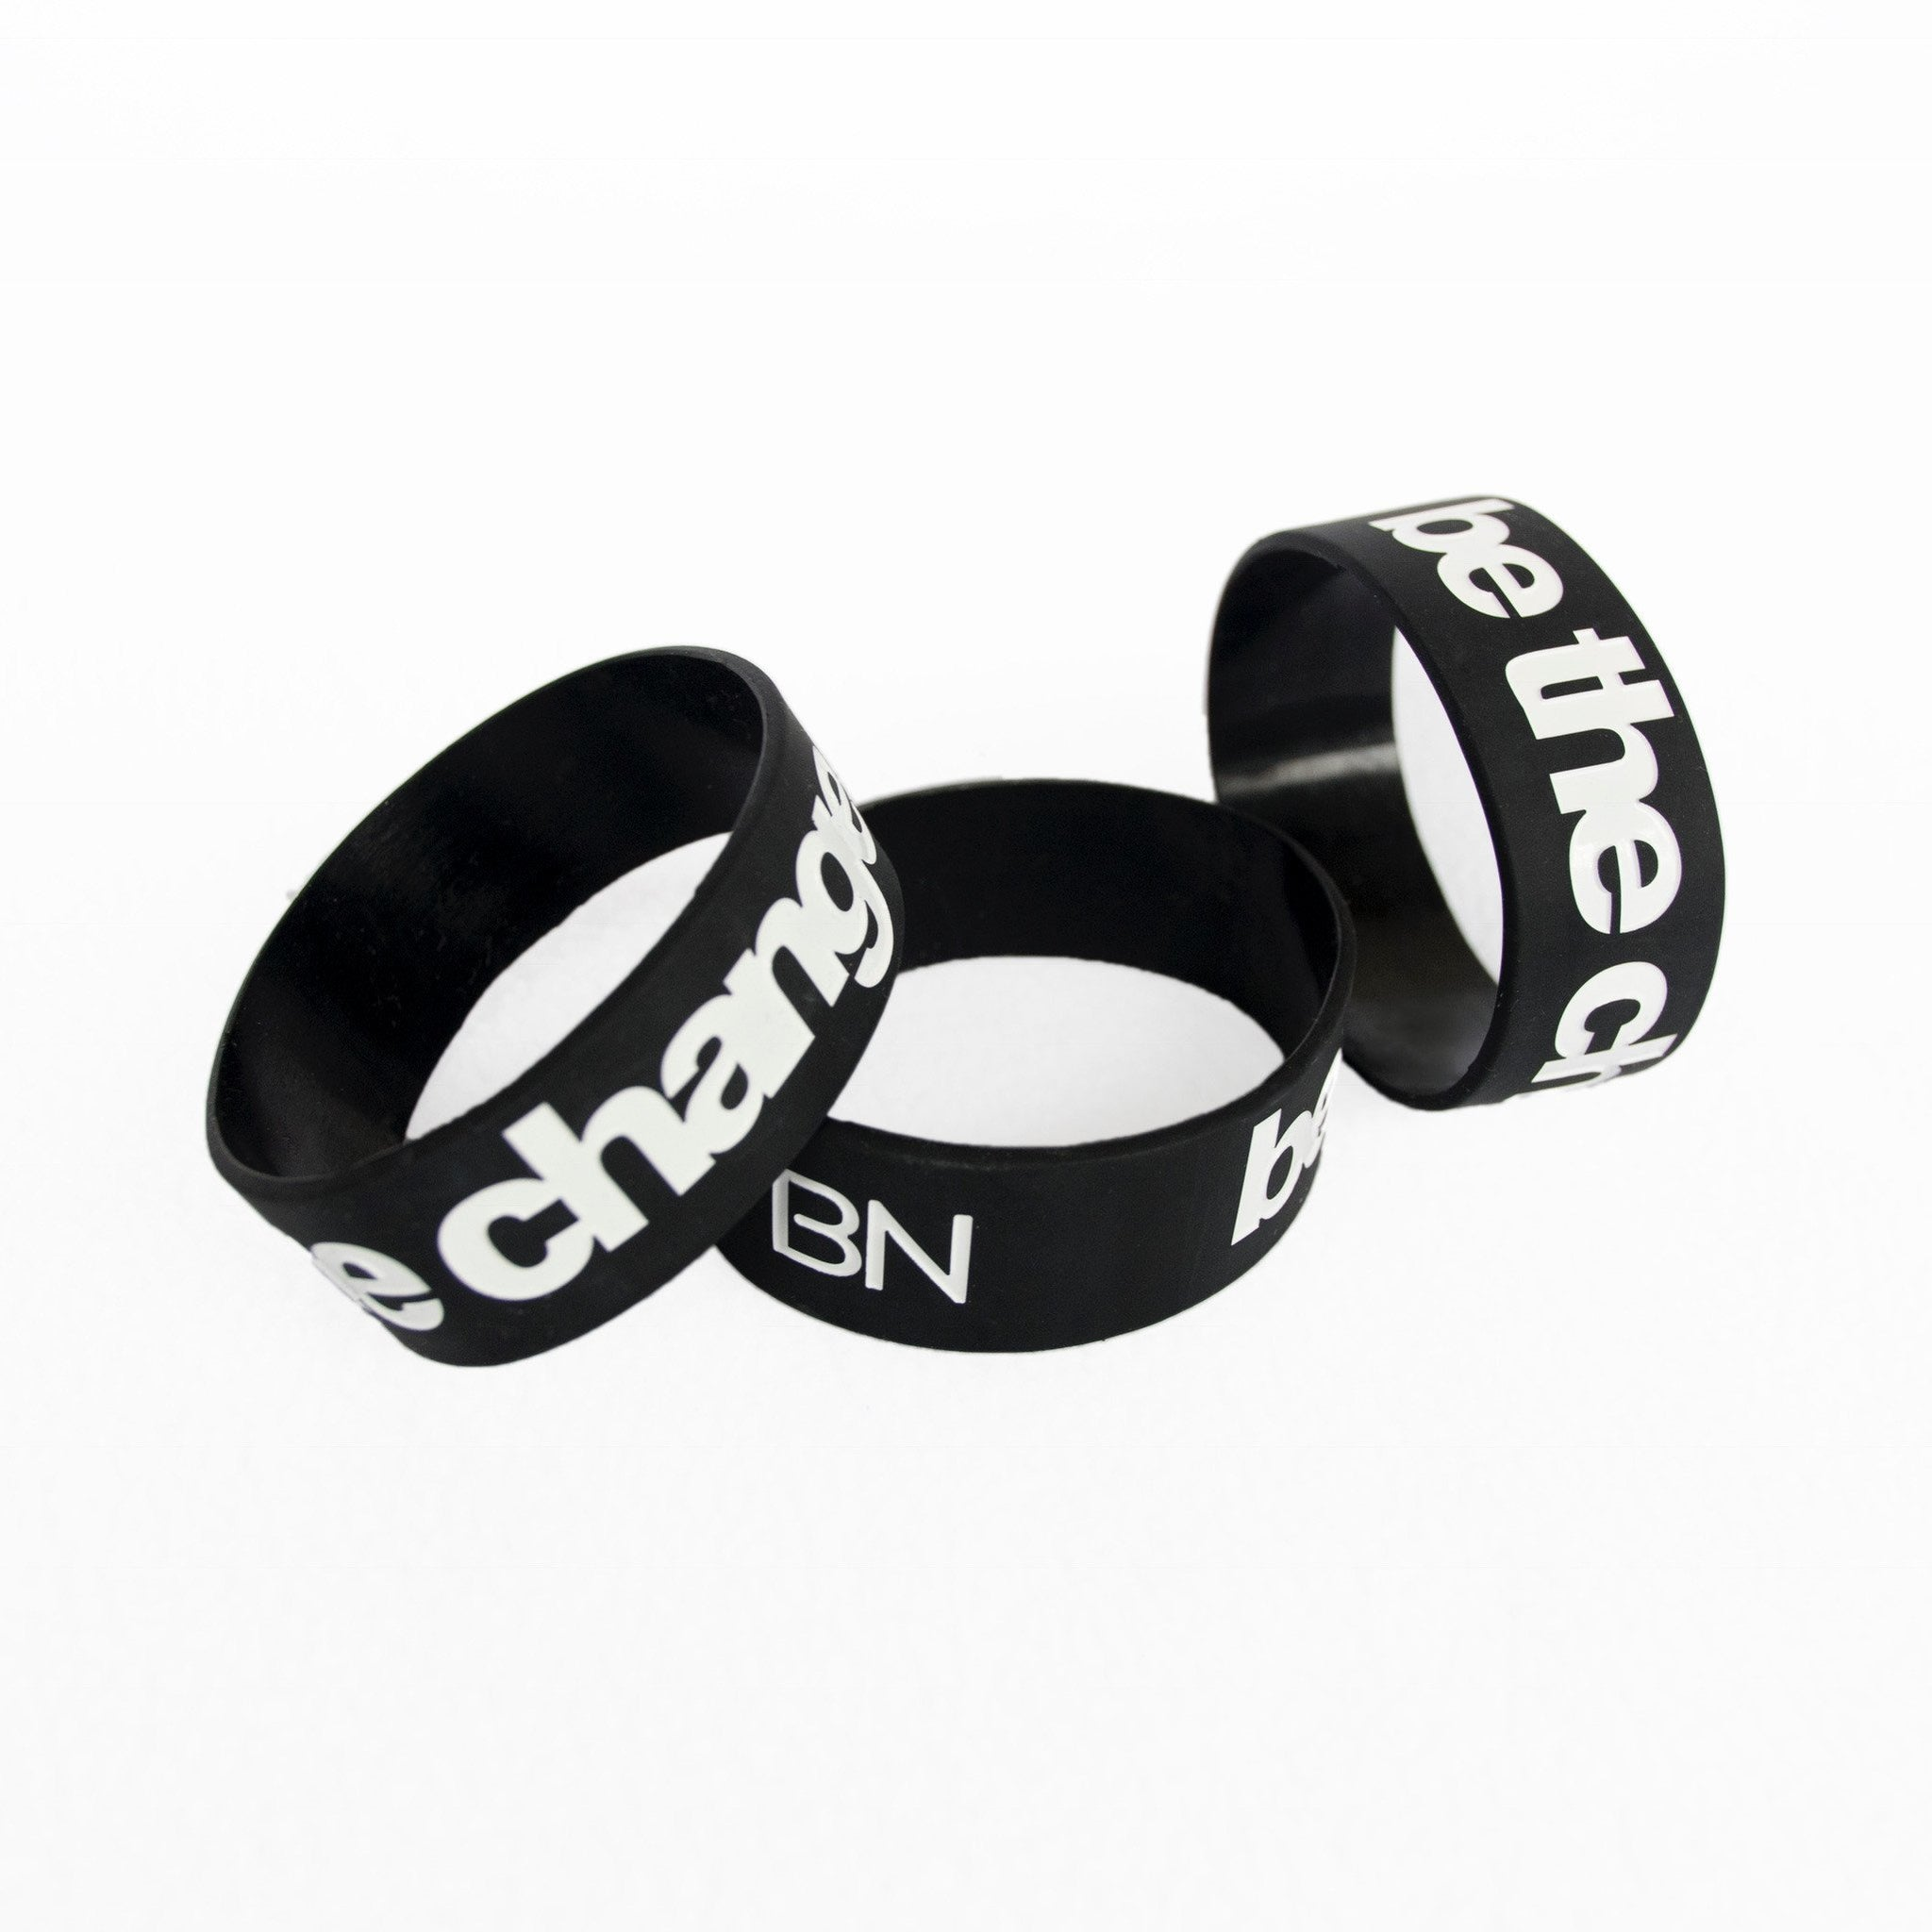 Be the Change wristband